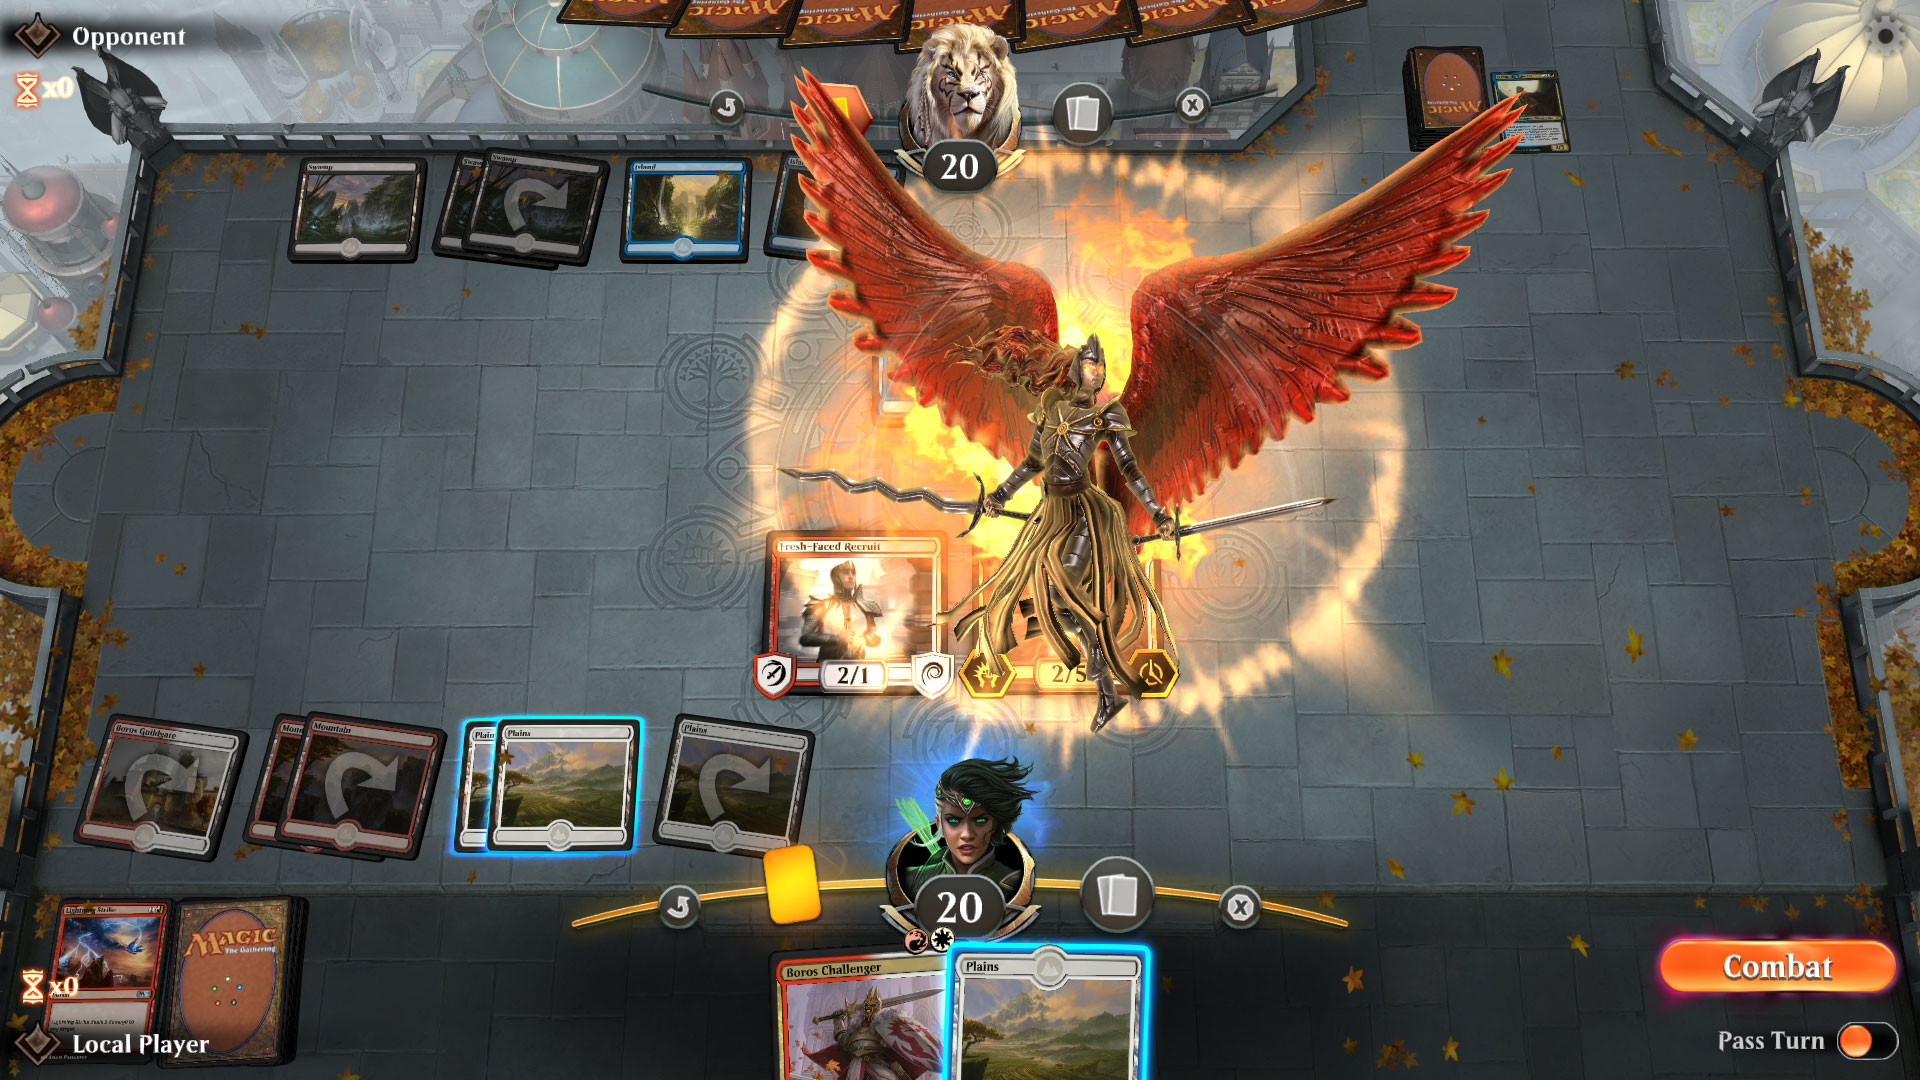 Magic: The Gathering se supone que es un e-sport